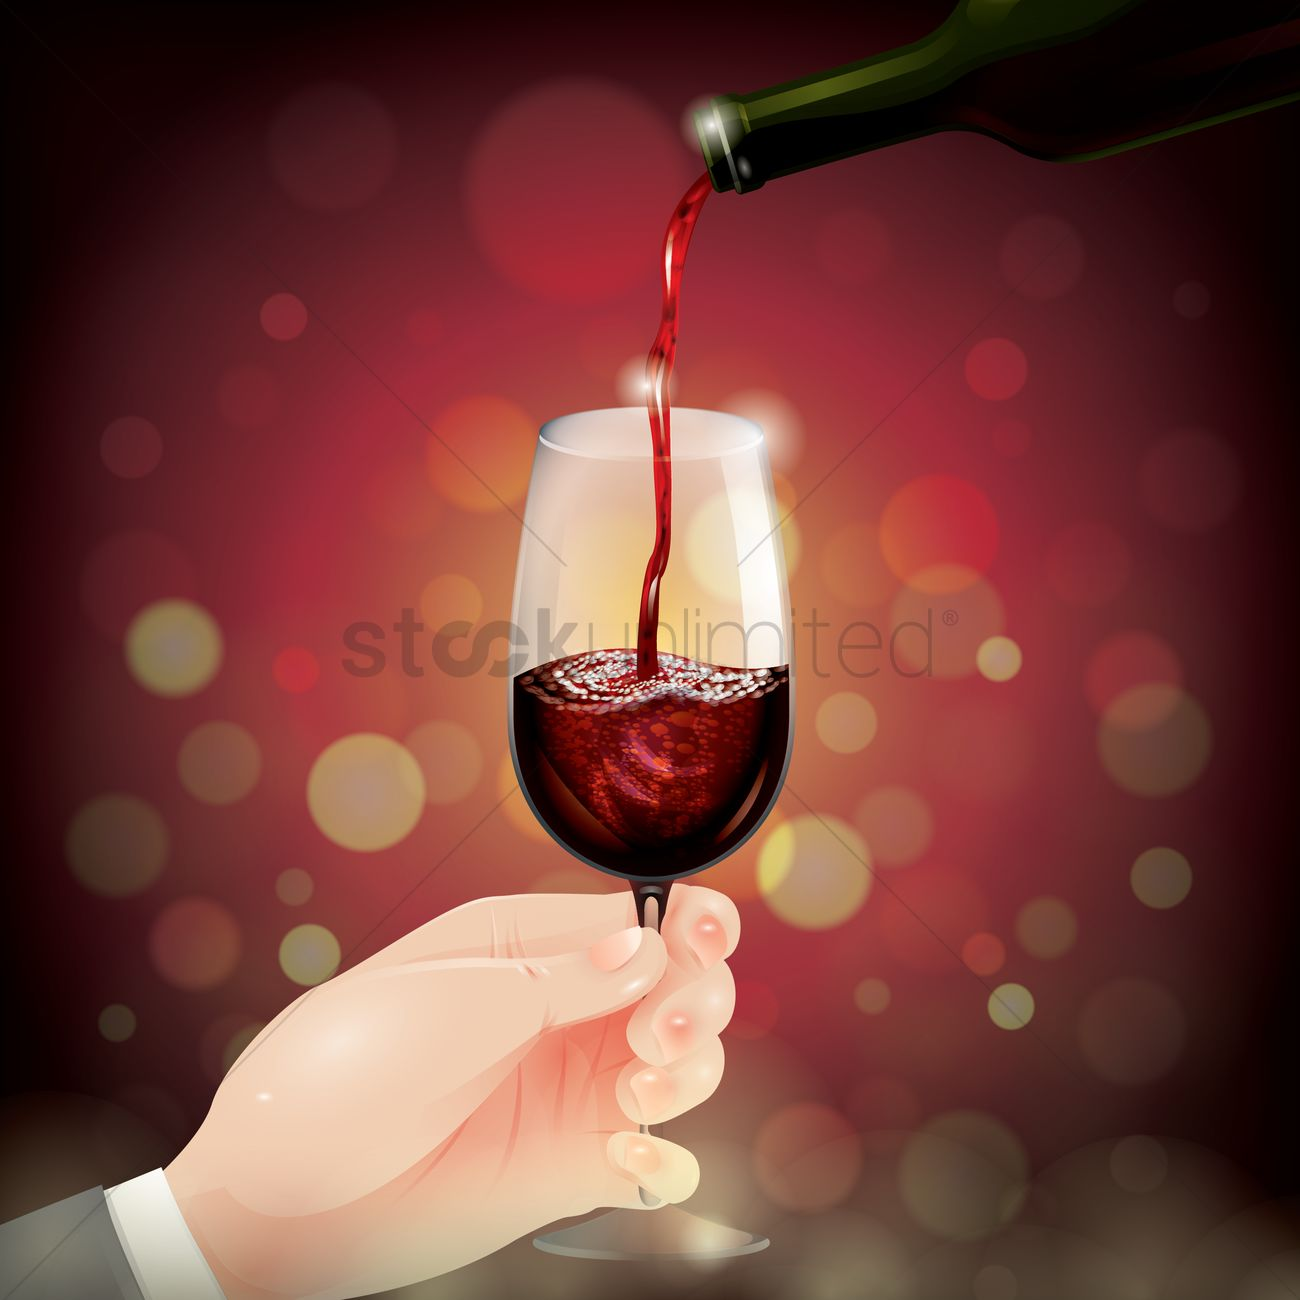 wine pouring into glass vector image 1536023